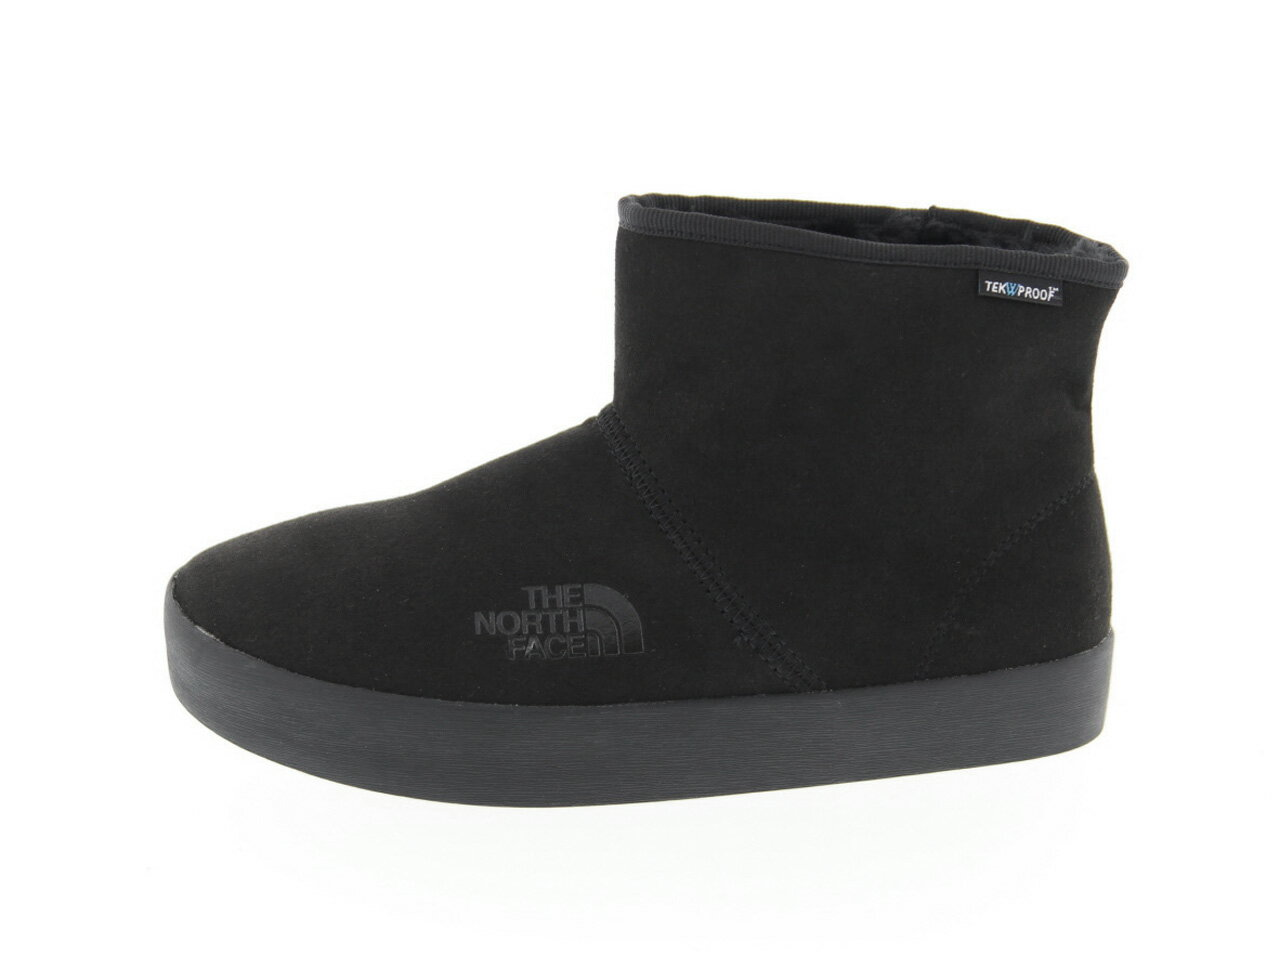 THE NORTH FACE Winter Camp Bootie II Short(nf51649)【ザ ノース フェース ウインター キャンプ ブーティ 2 ショート】【the north face 2017】【the north face boots】【スニーカー】